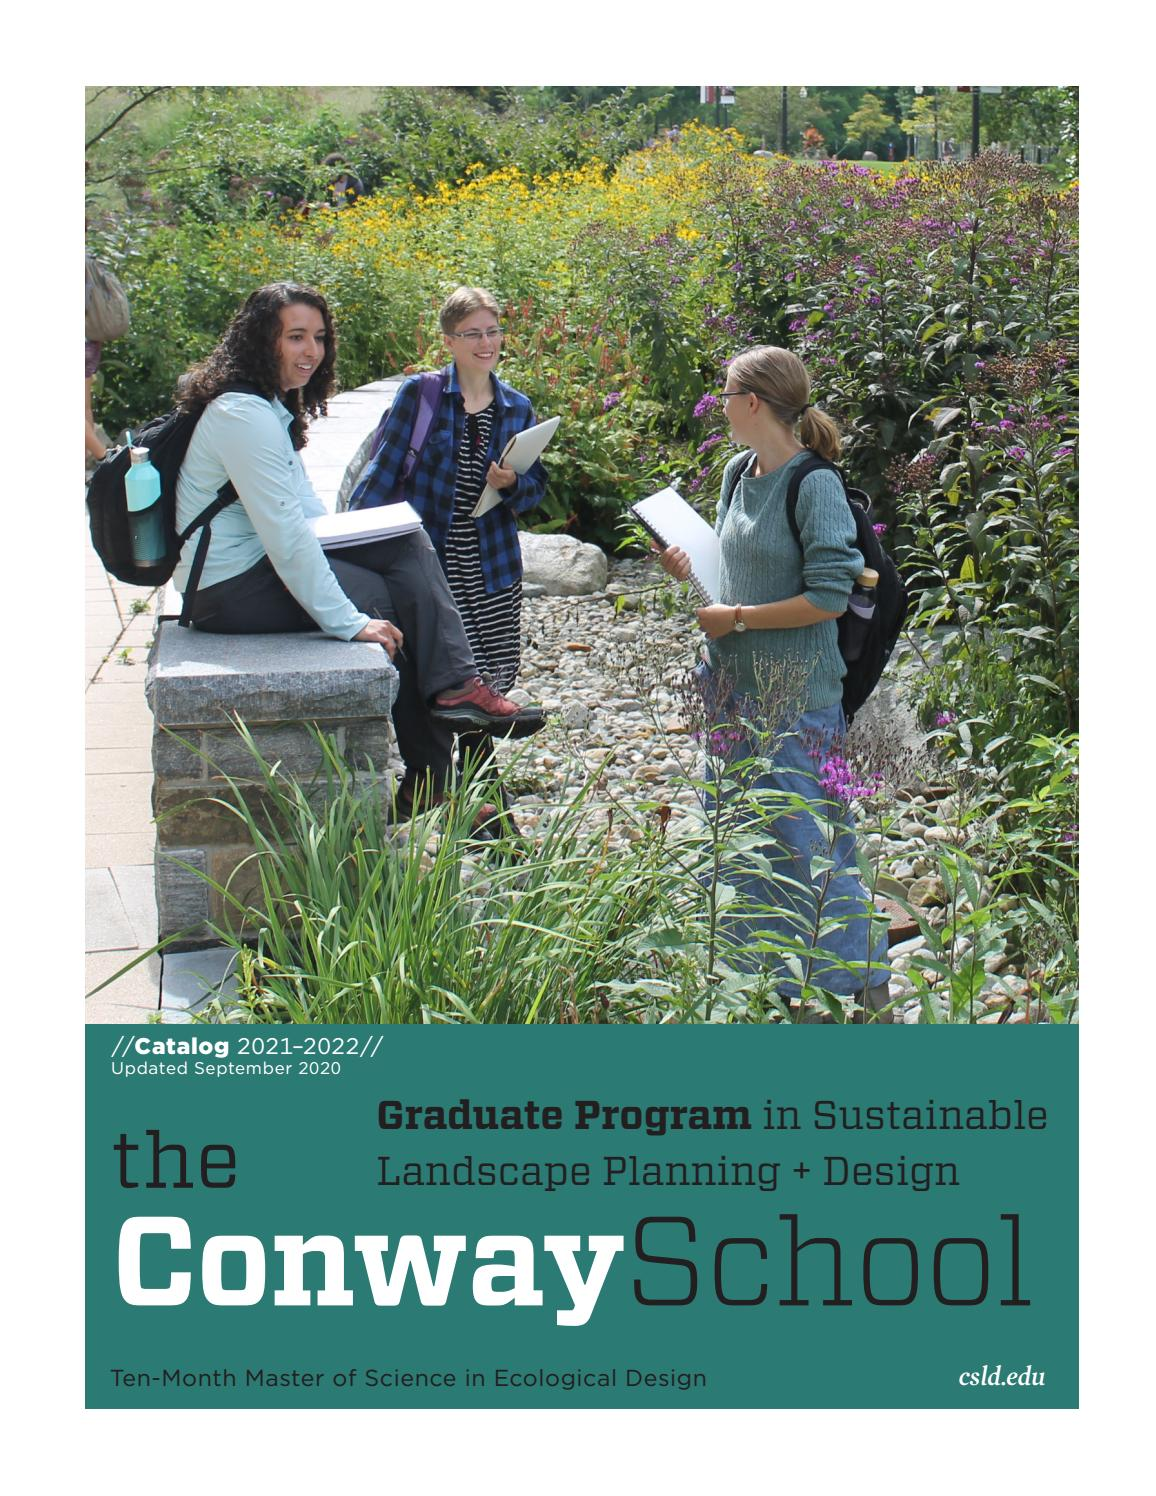 Tufts Academic Calendar 2022 2023.Conway School Catalog 2021 2022 By The Conway School Issuu